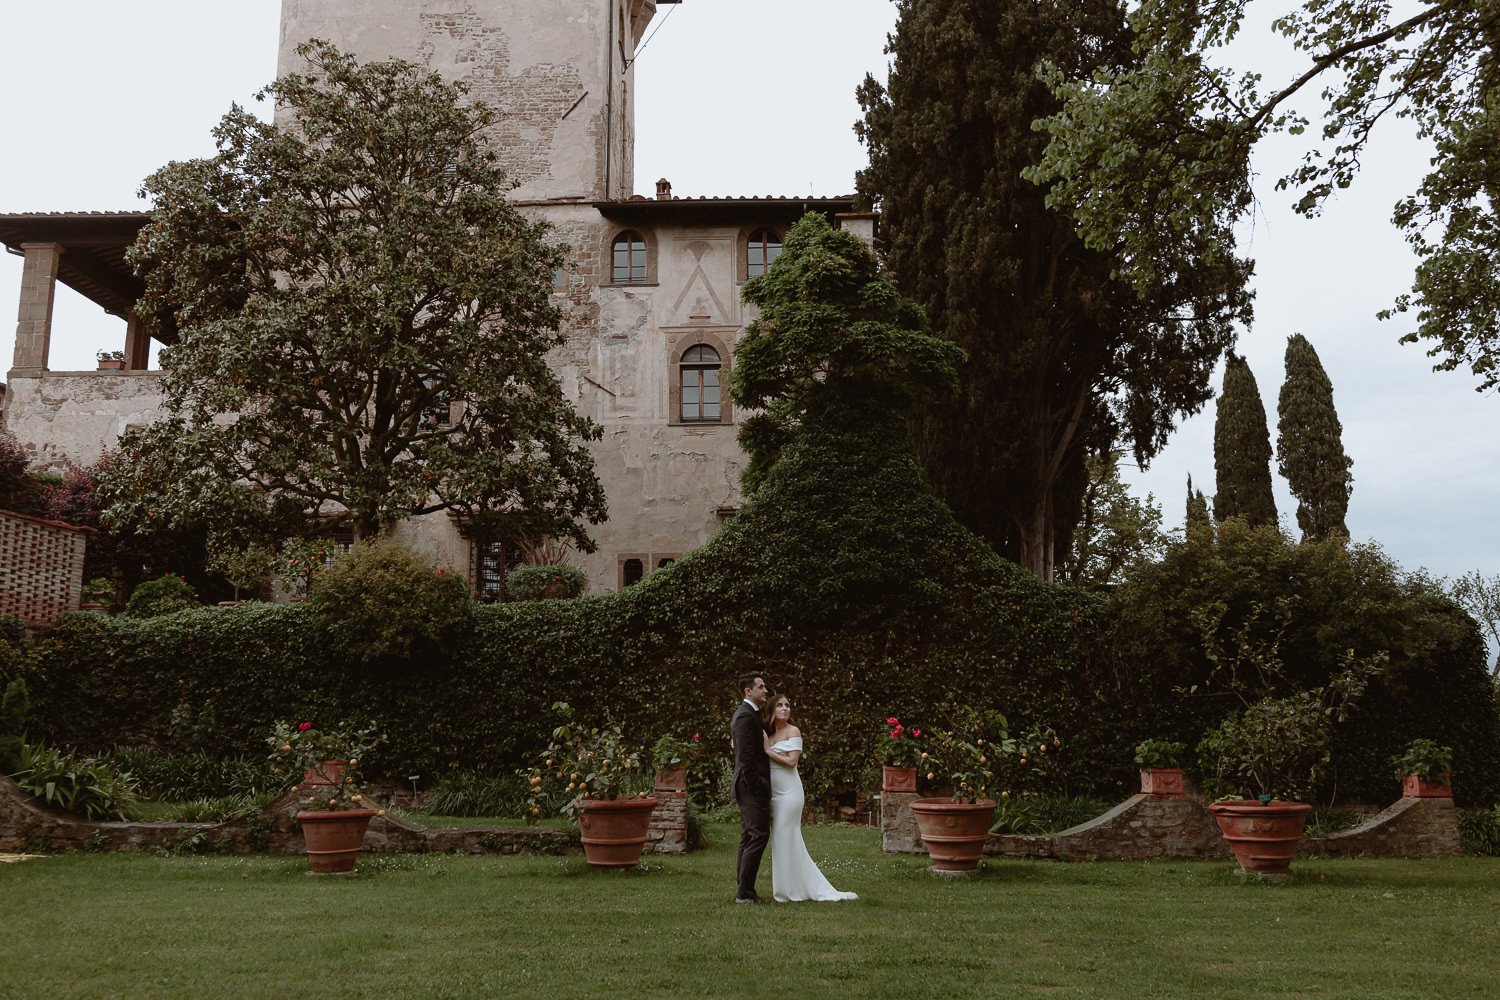 elopement photographer florence torre bellosguardo garden overlooking city wedding photo session